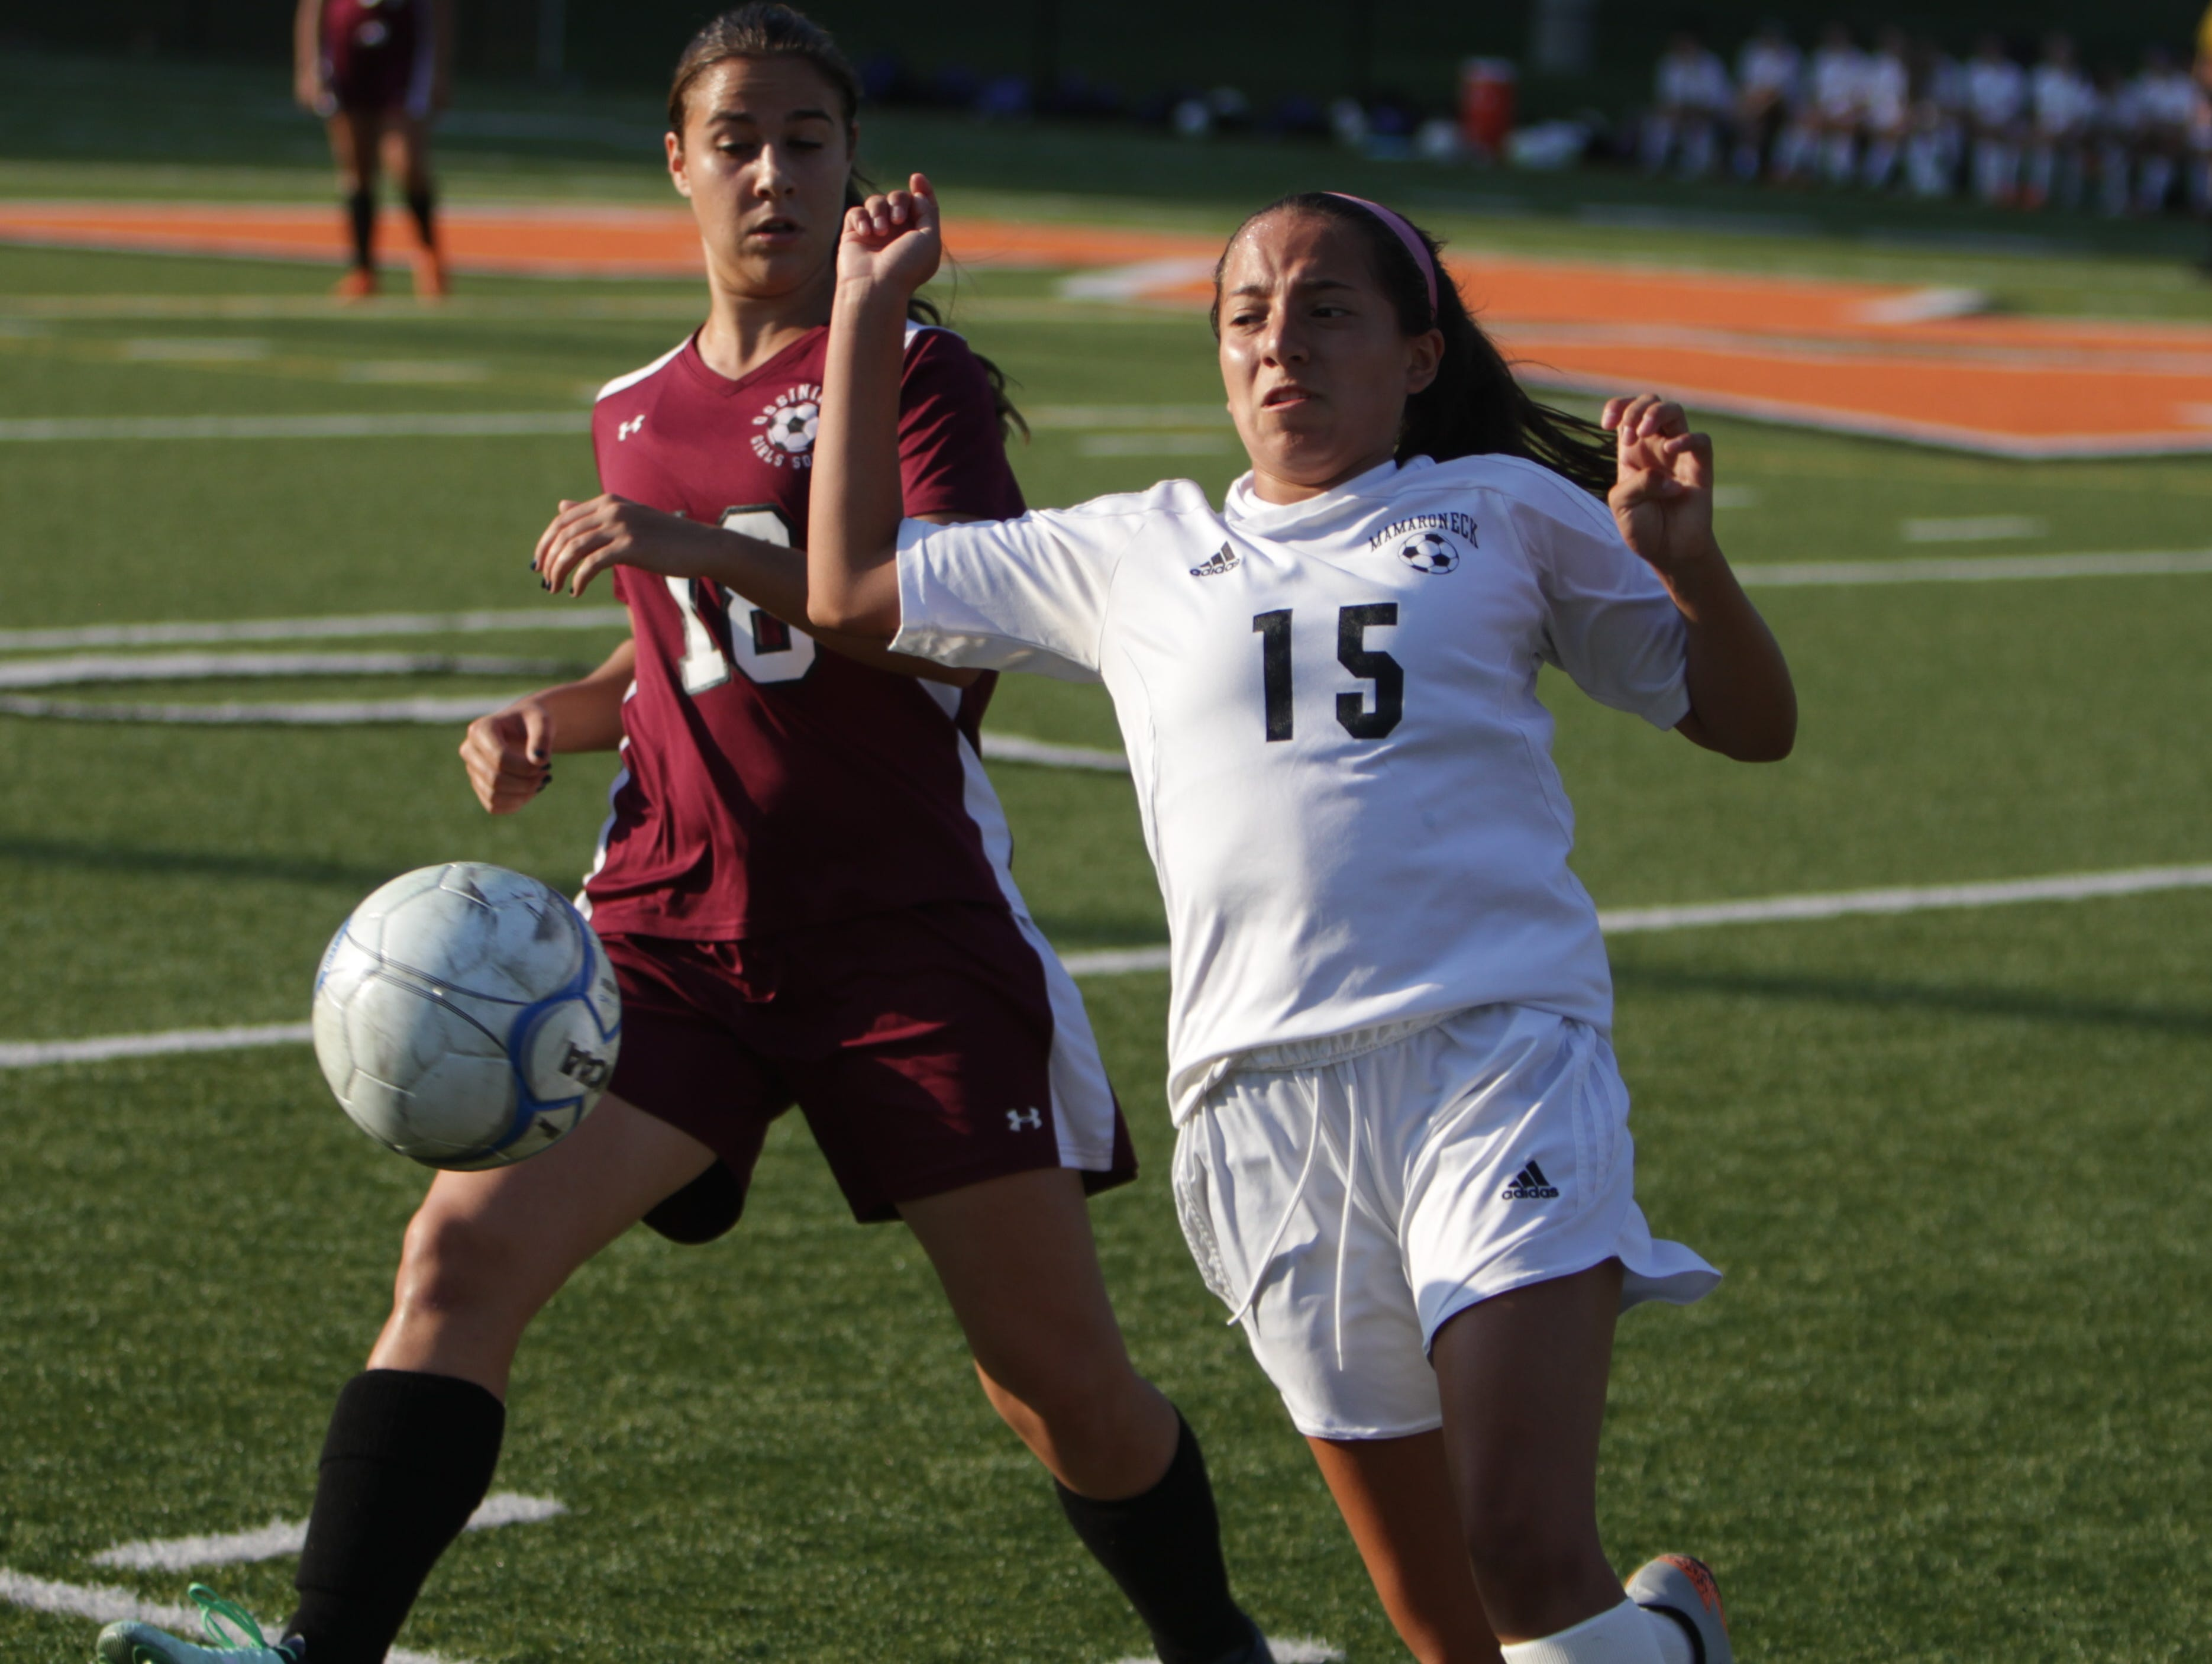 Mamaroneck's Jessica Barrios (15), pictured here in a game against Ossining on September 17th, 2015, against Ossining, had a goal and an assist in her team's 2-1 win over Lakeland on October 3rd, 2015.